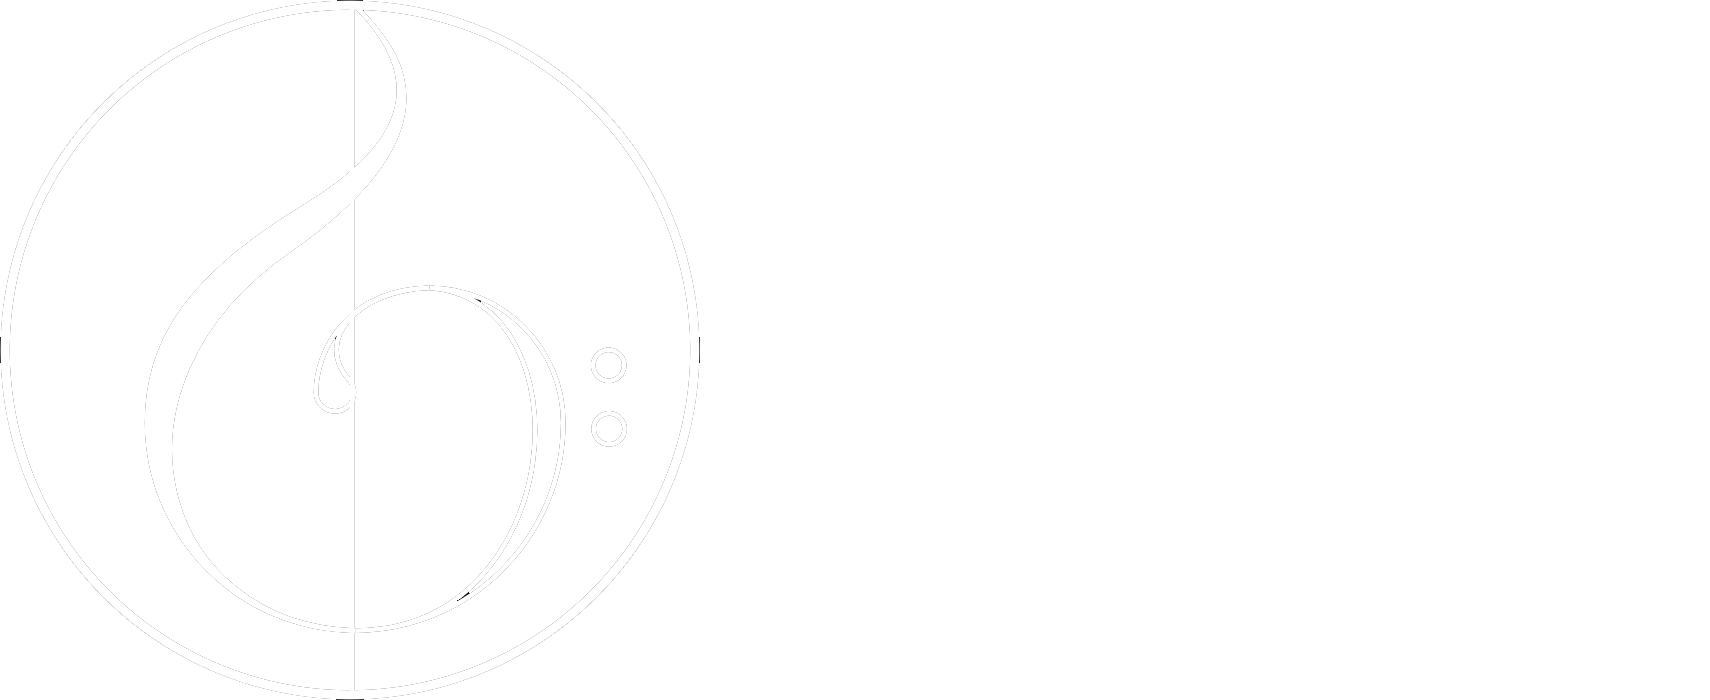 Monash University Philharmonic Society